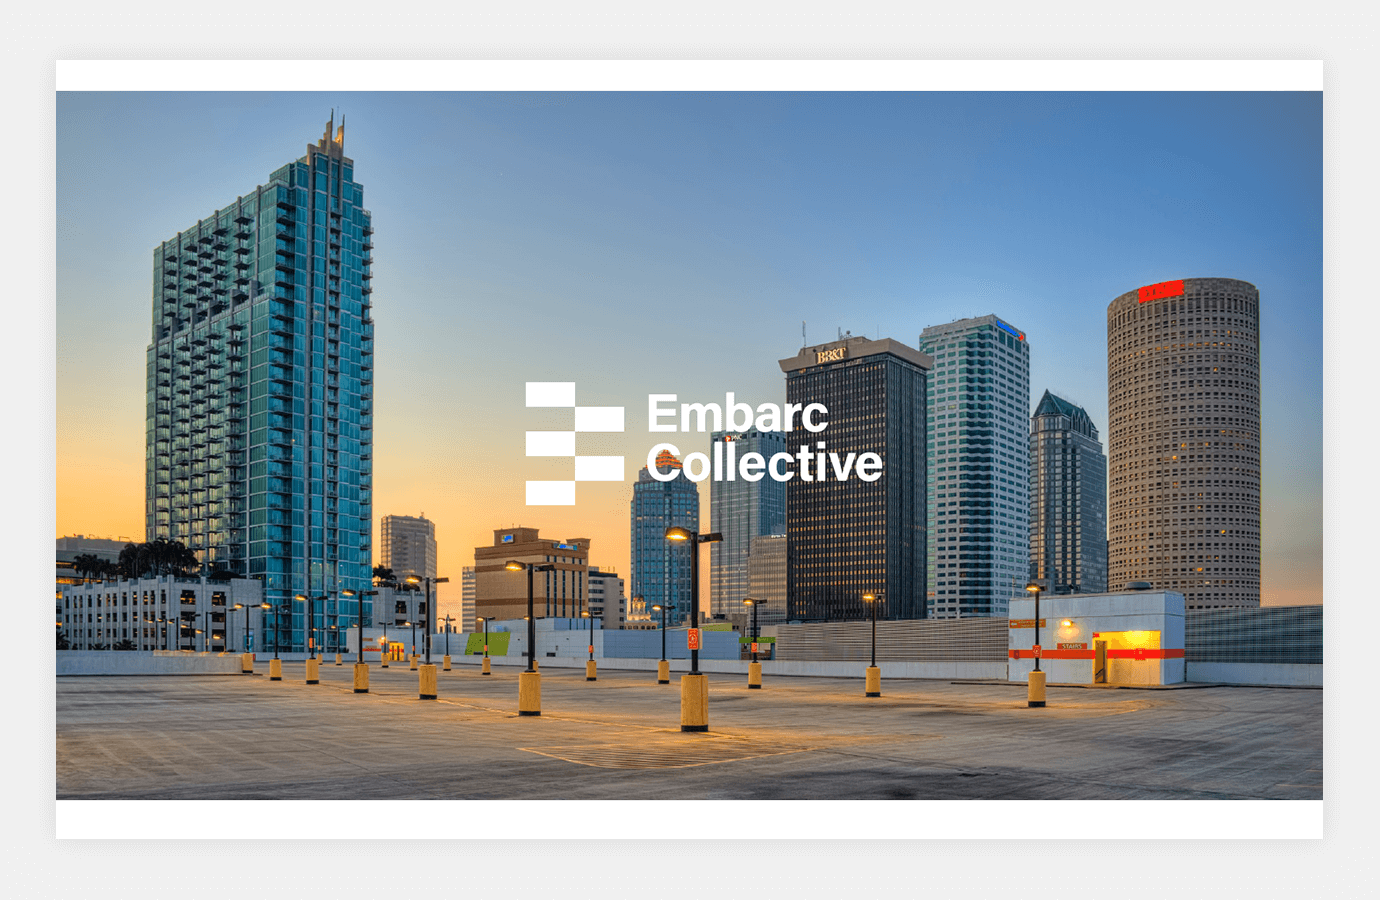 Screenshot of Embarc Collective website showing downtown Tampa skyline